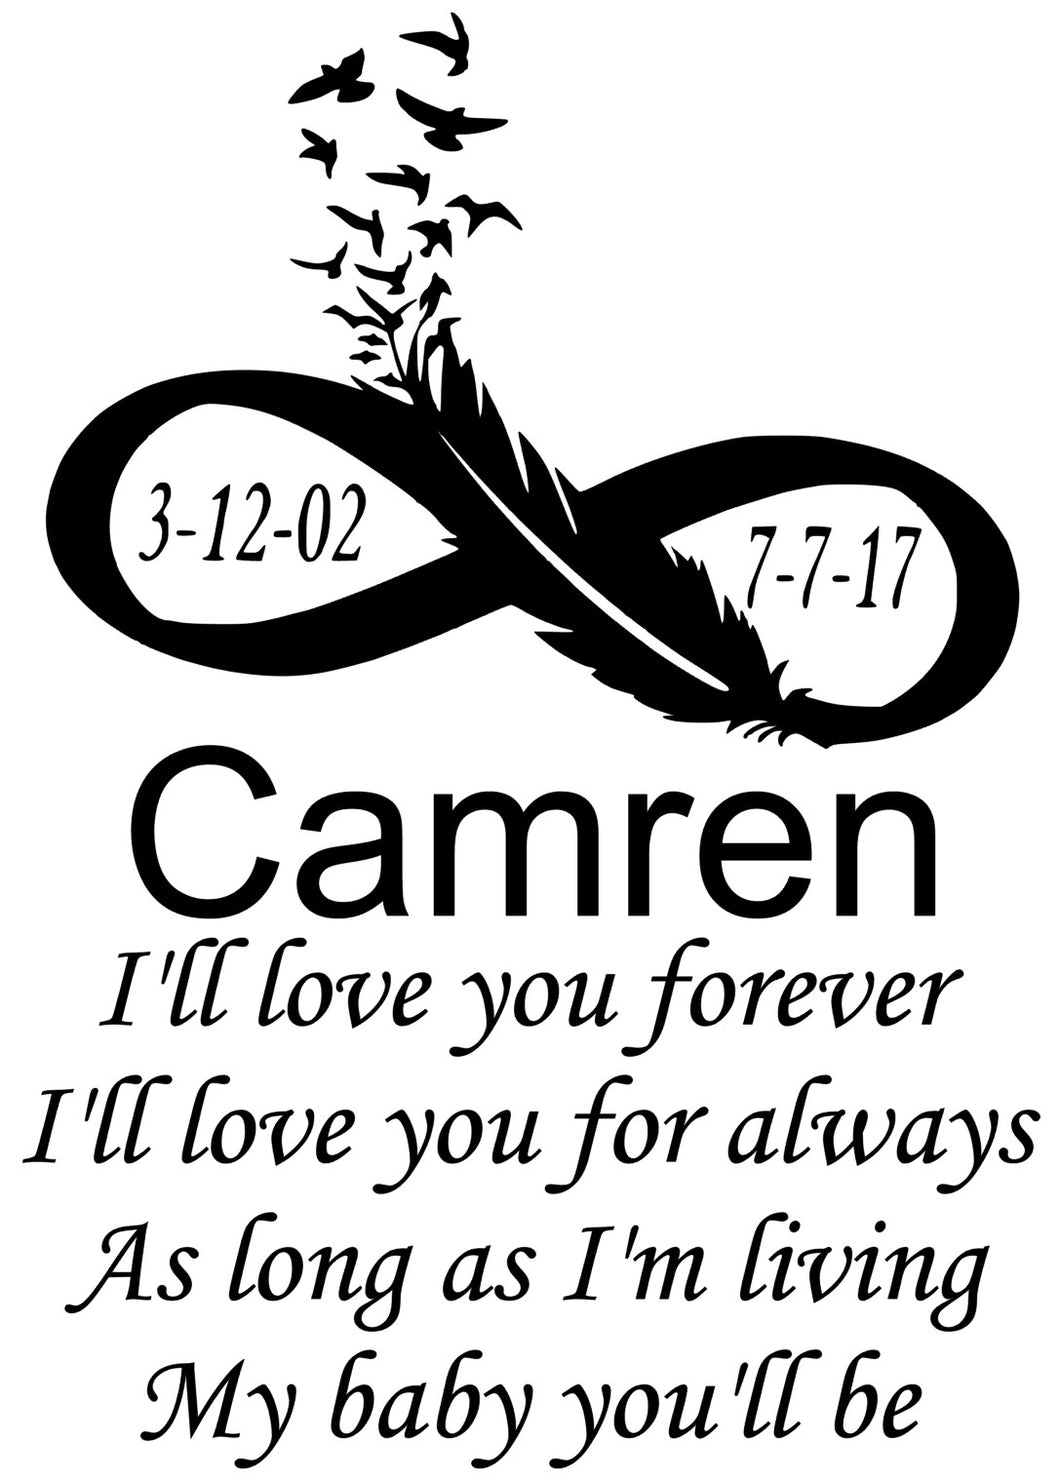 Memorial Window Decal for Camren